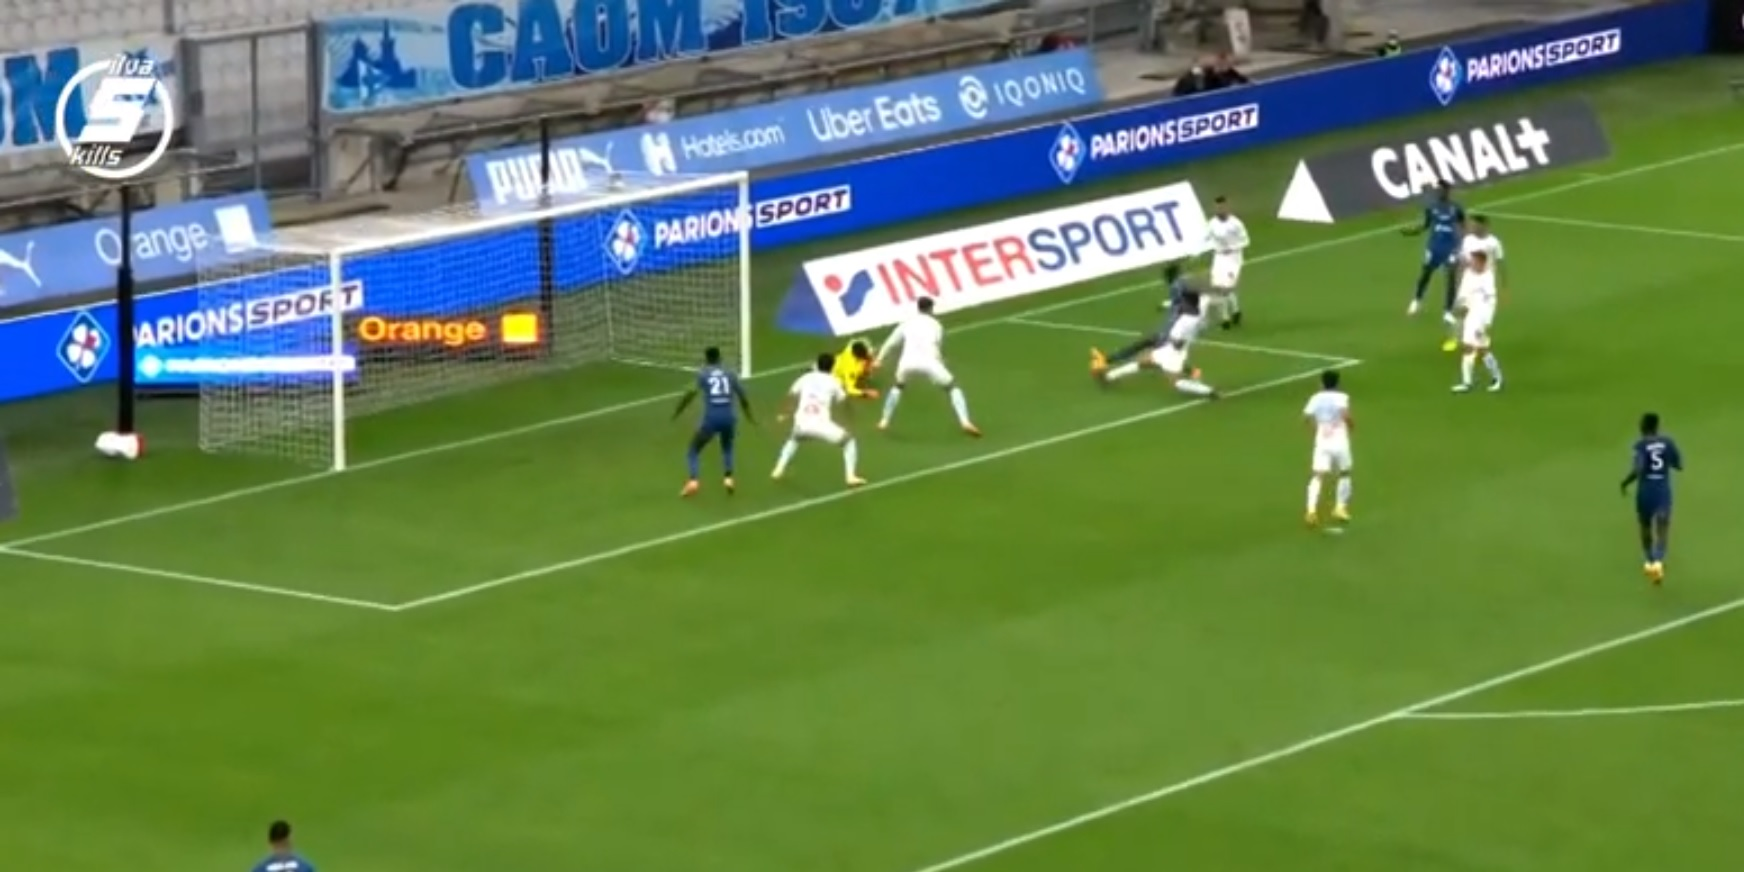 (Video) Boubacar Kamara highlights: Goals, dribbles, tackles and more from reported LFC target